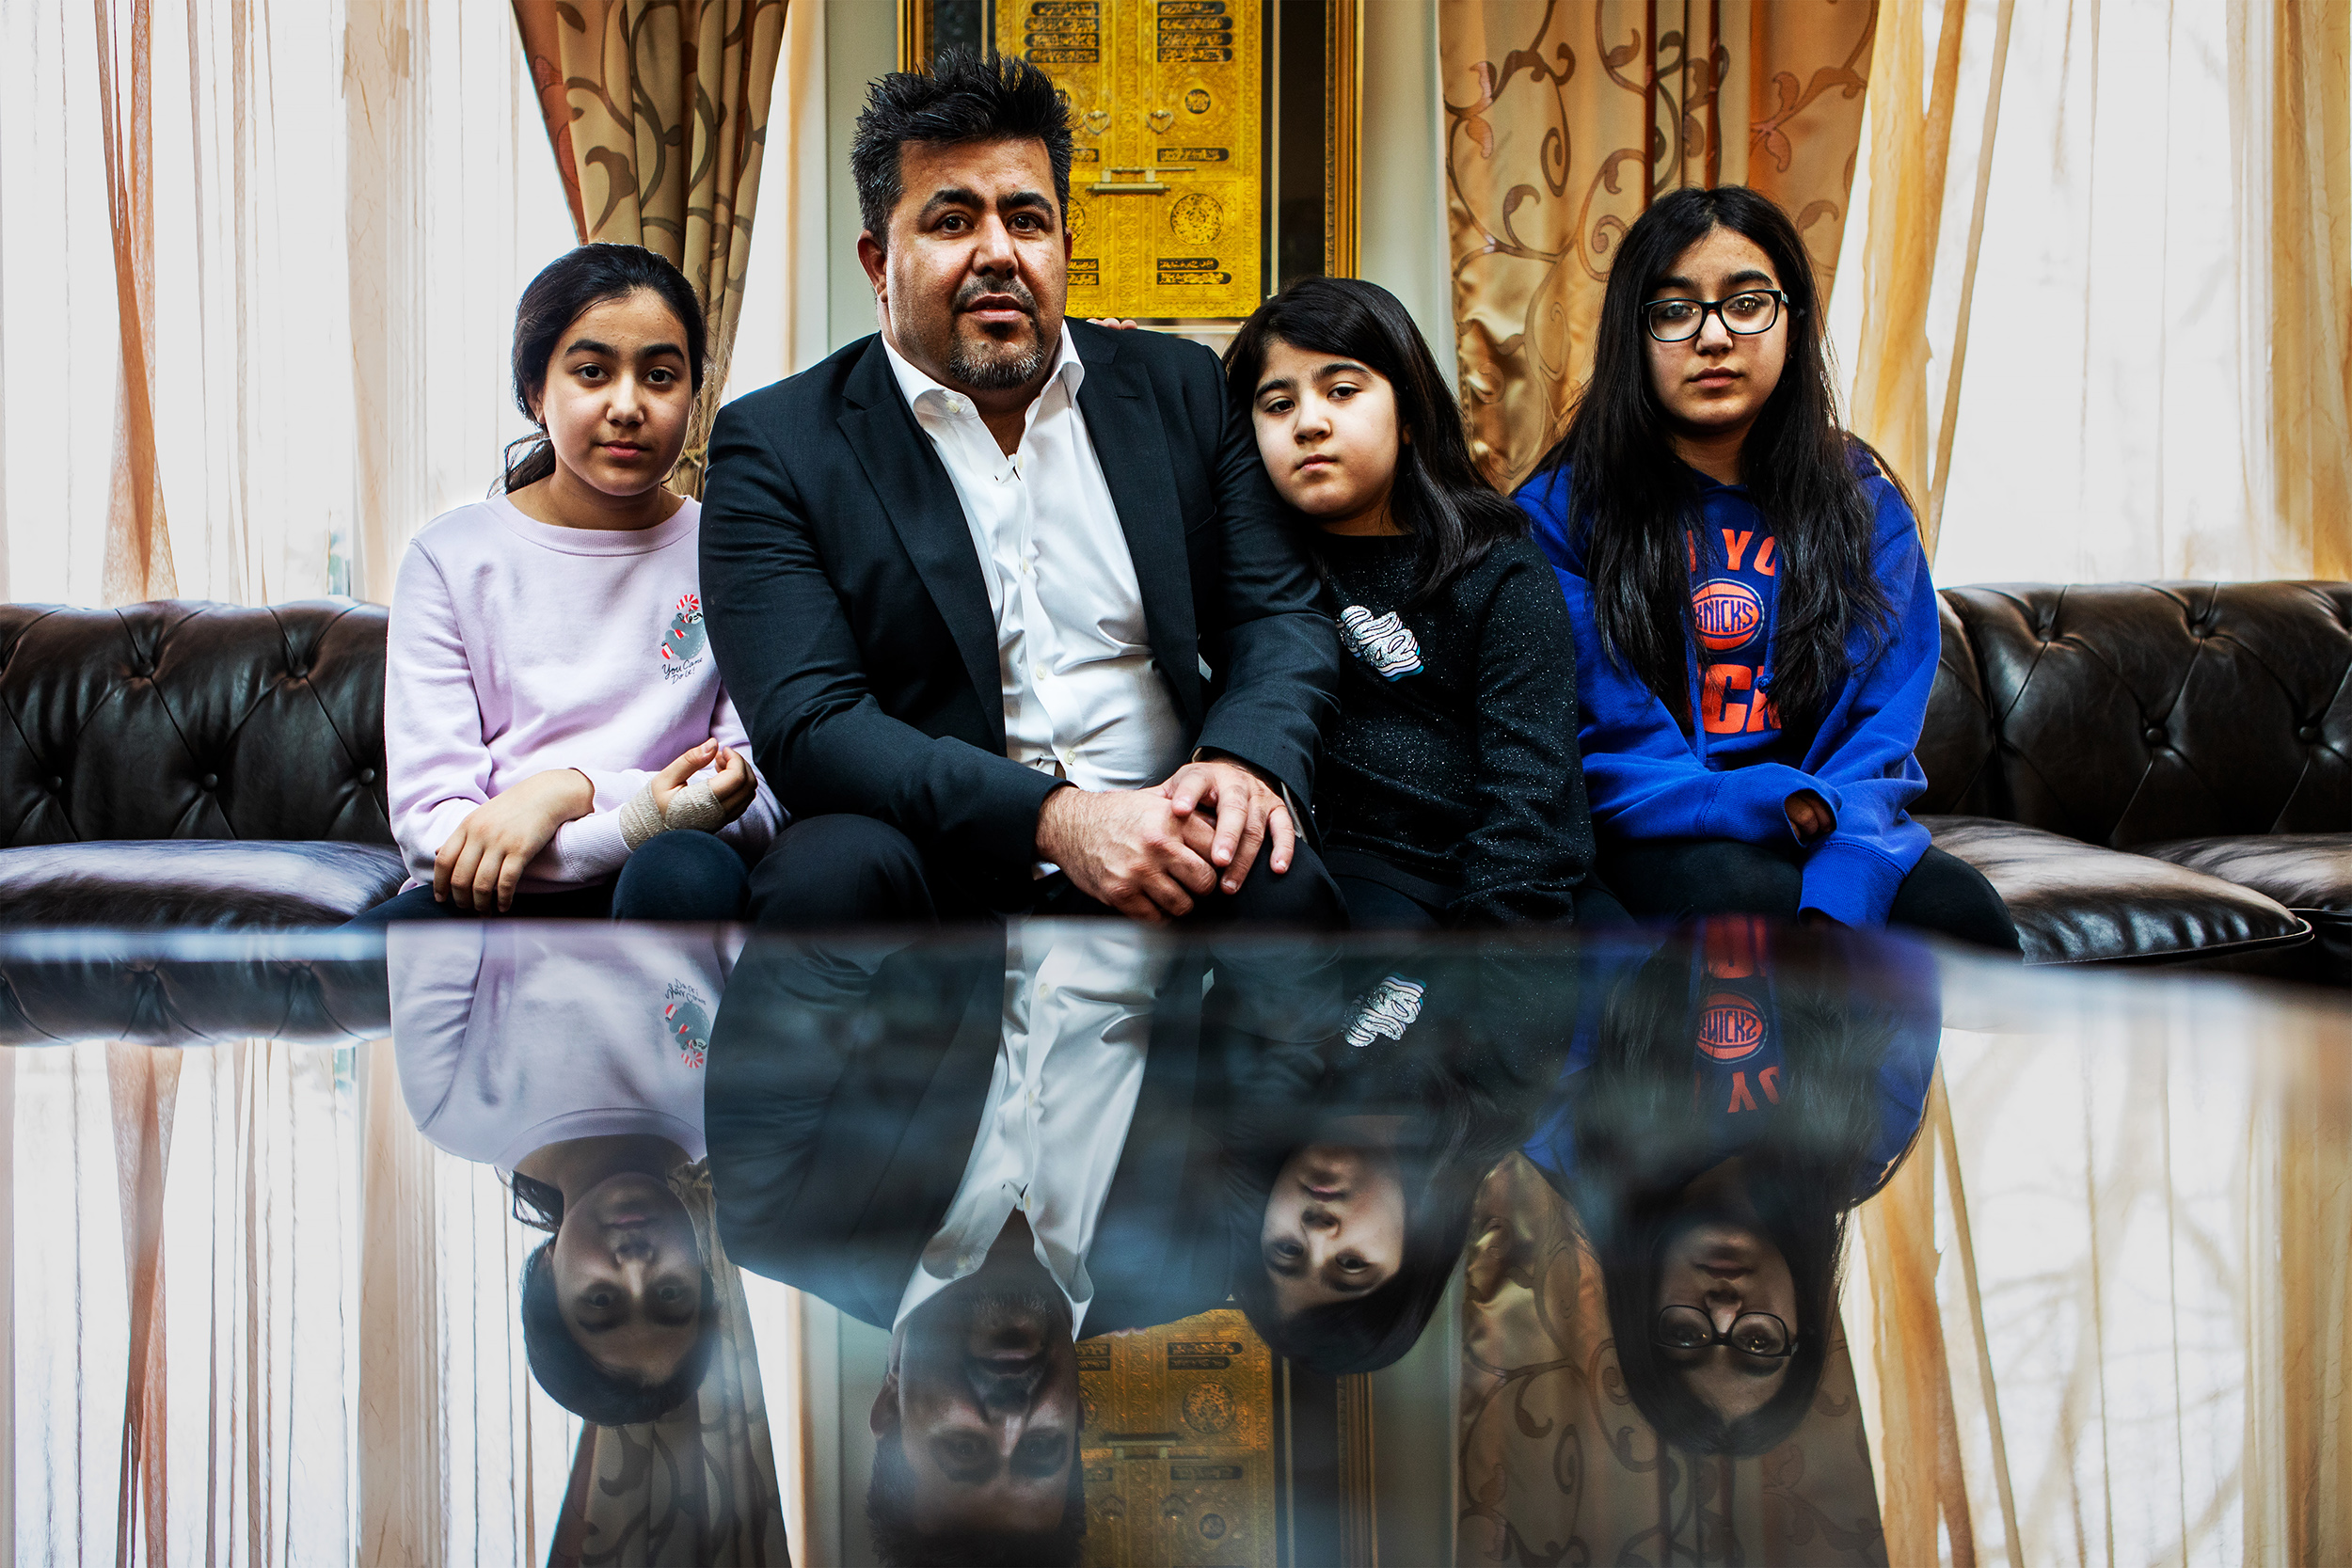 Wali Omarkheil with his children at his home in Commack, New York. Wali was discriminated against because of his religion and was eventually fired. He is now suing the corporation that fired him.